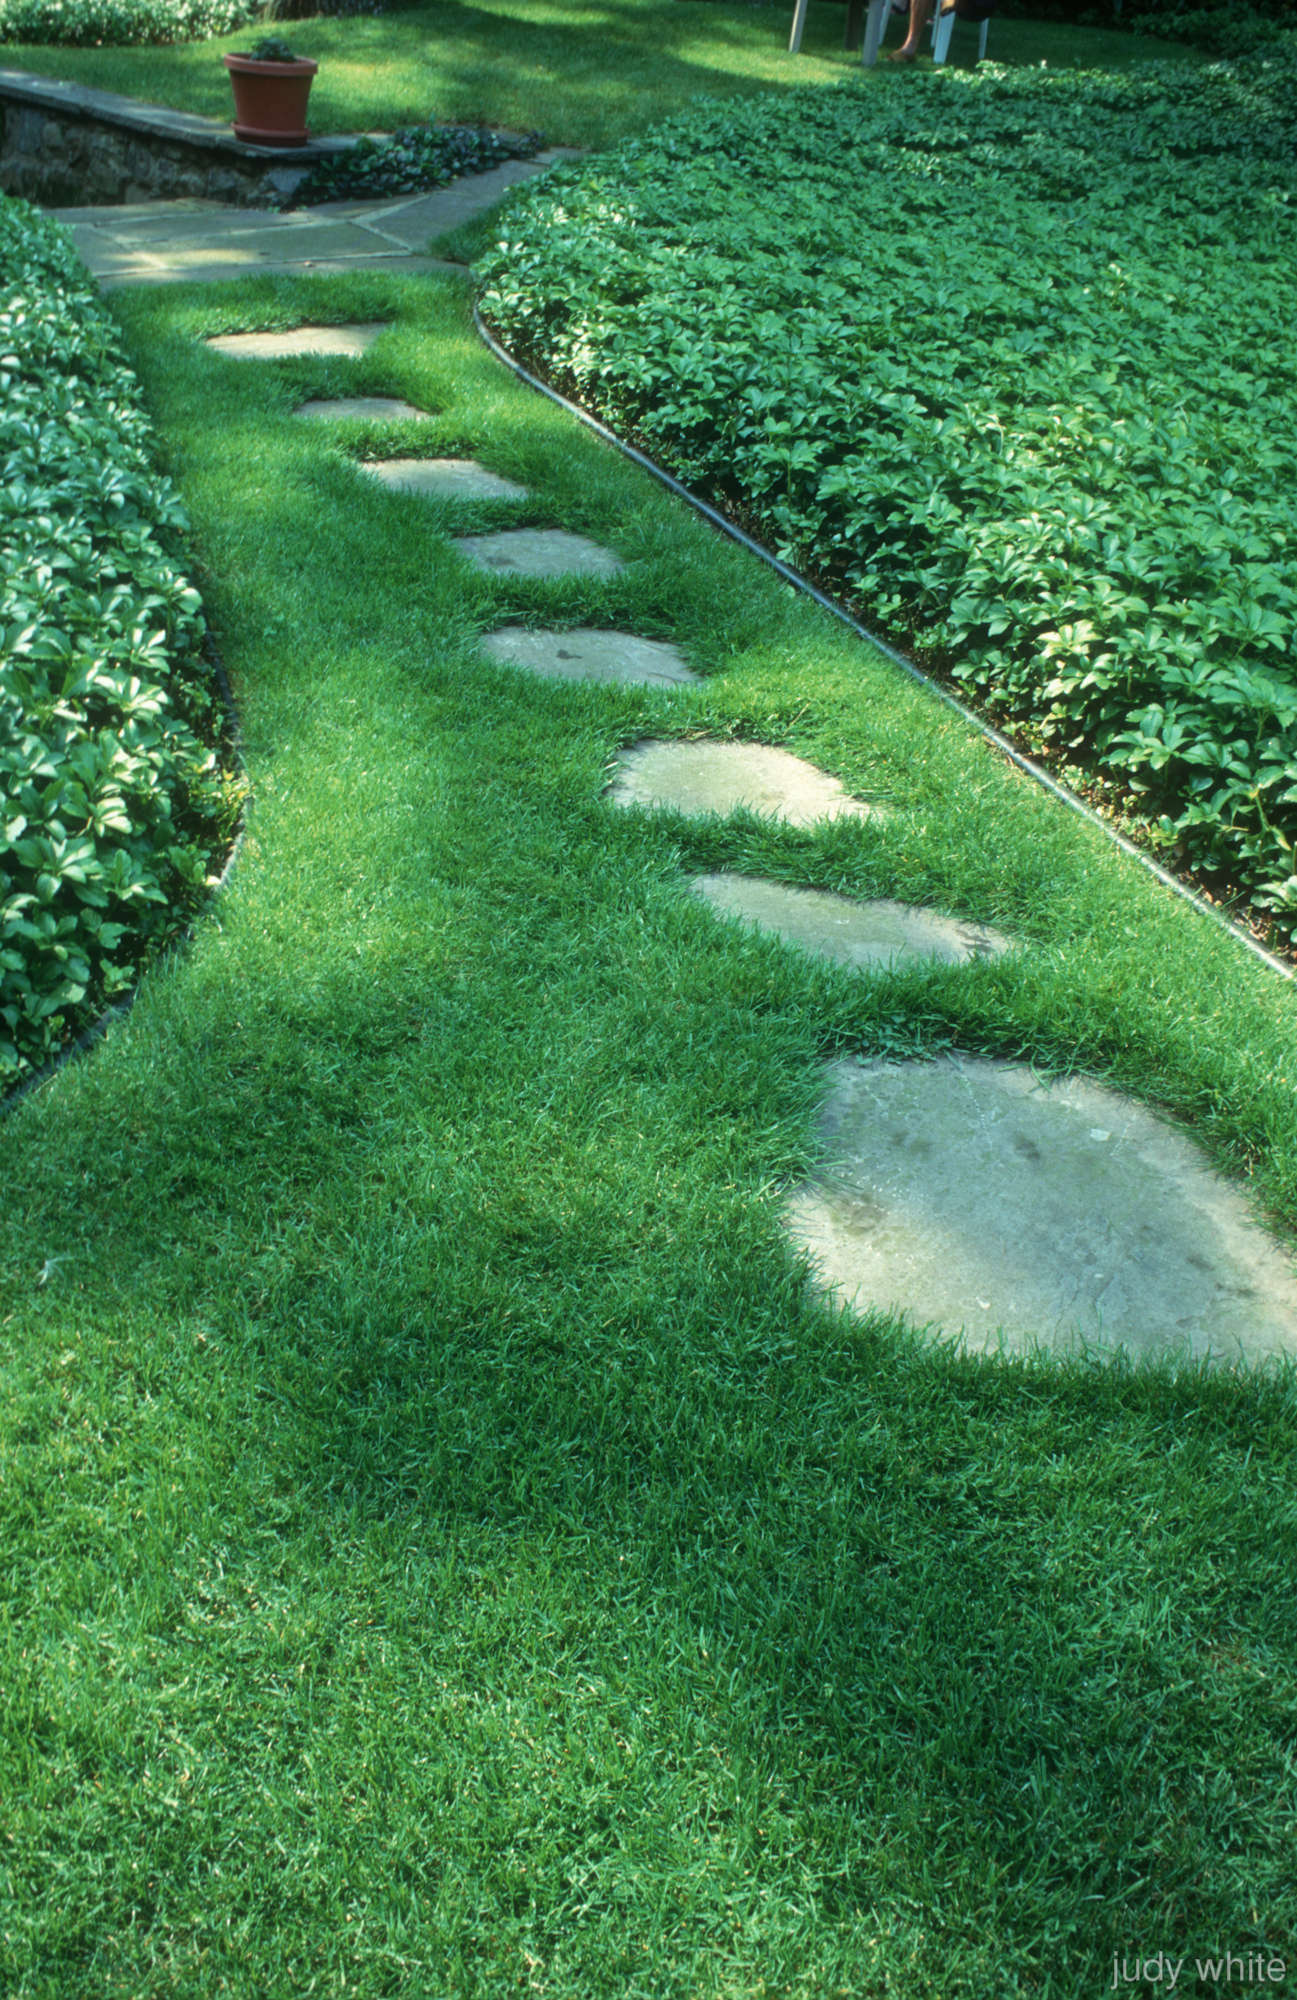 Judy white garden photographer 39 s association for Stone stepping stones for garden paths